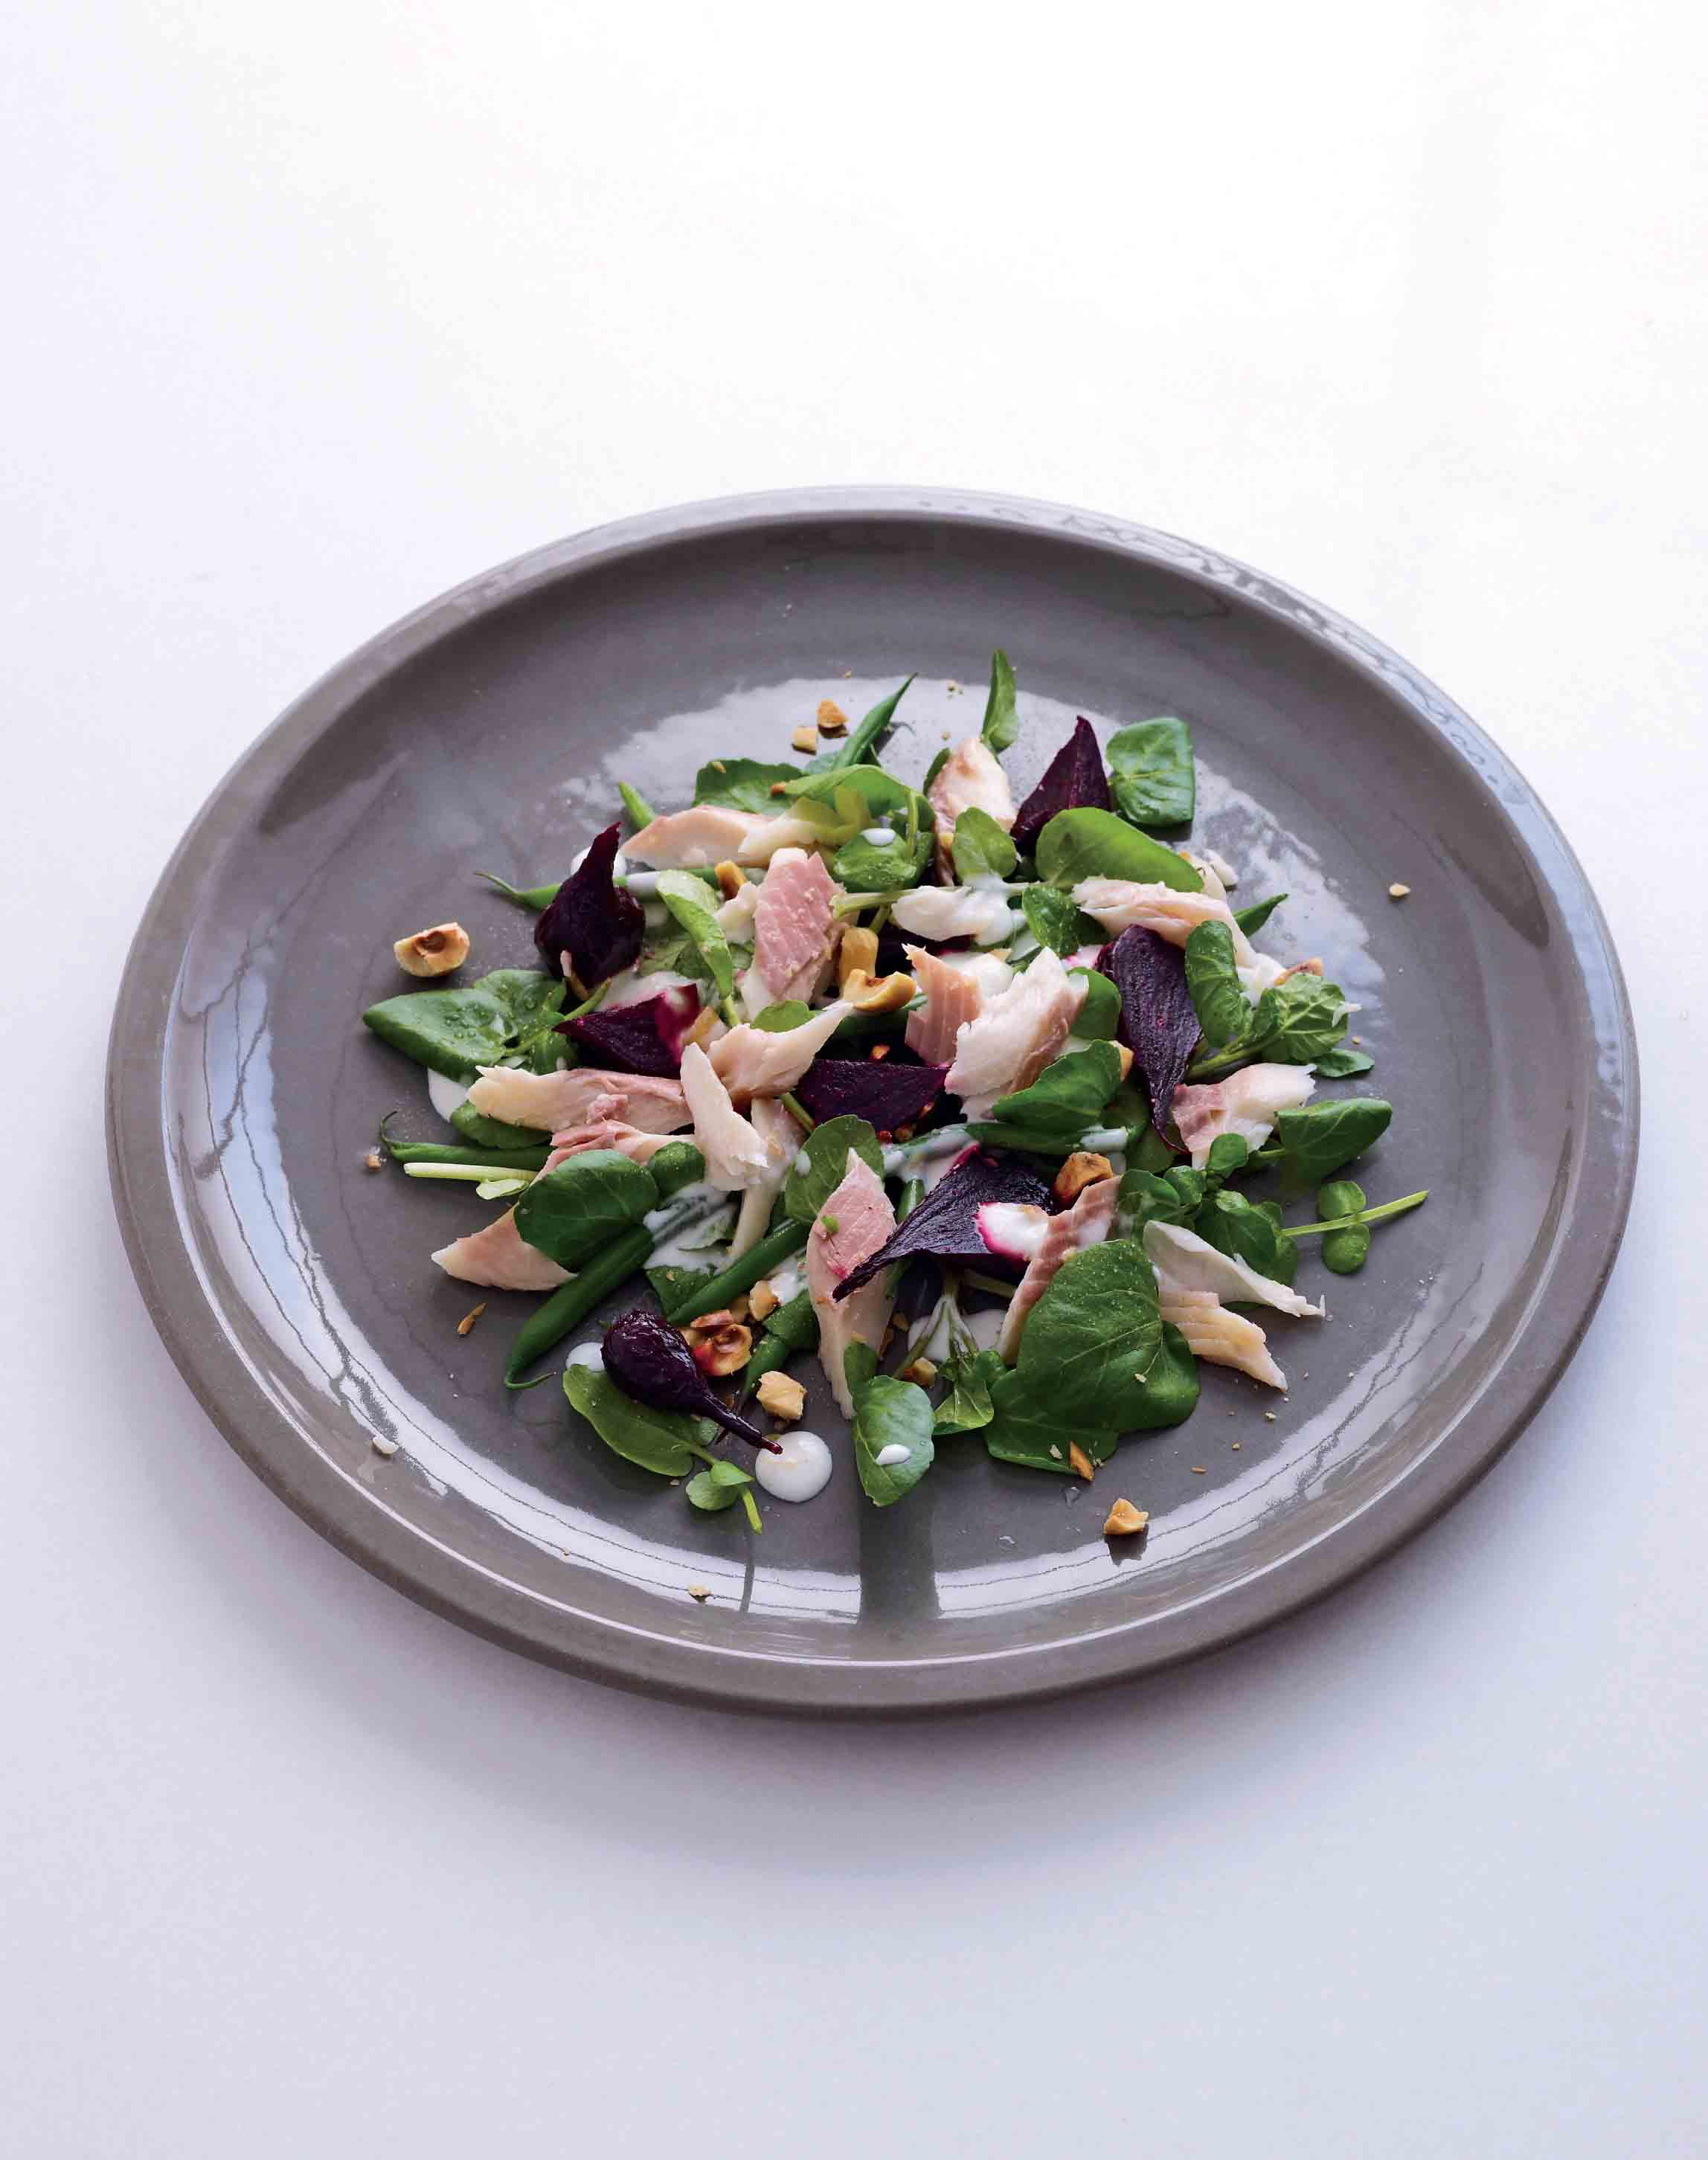 Hot-smoked trout with roasted beetroot and watercress